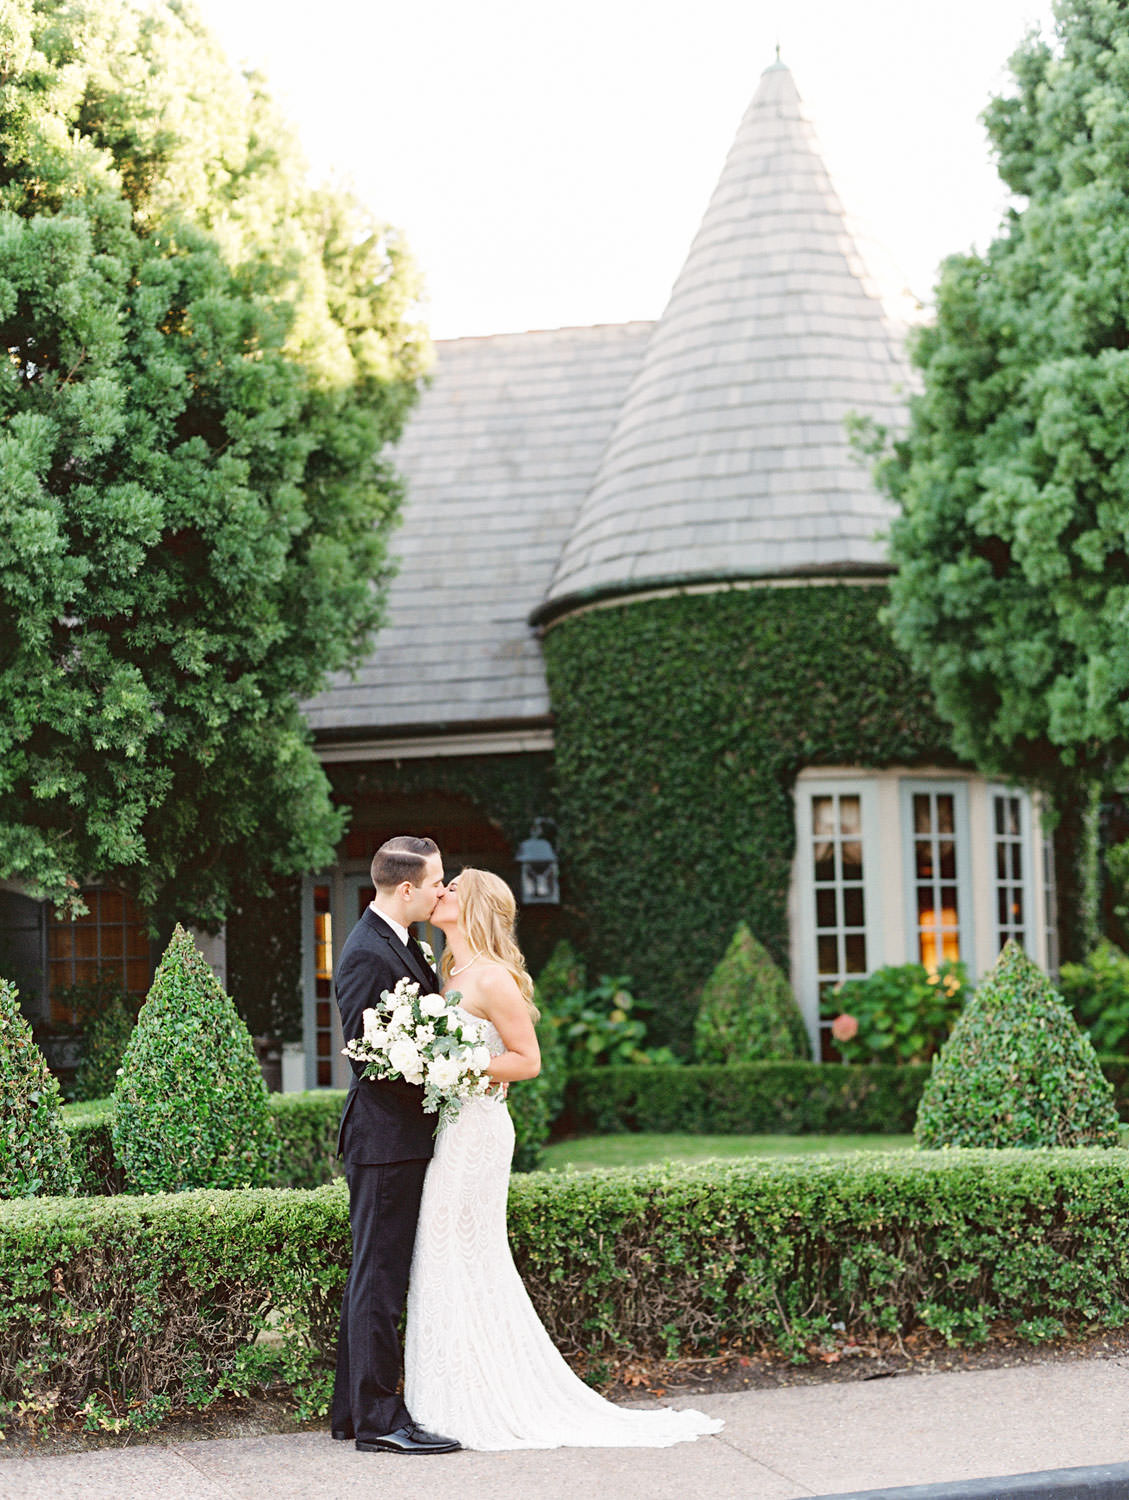 Film photo of bride and groom in front of an ivy-covered building with a turret. Bride wearing a Galia Lahav Gala gown with a sweetheart neckline carrying an ivory and green bouquet. Del Mar Country Club Wedding by Cavin Elizabeth Photography